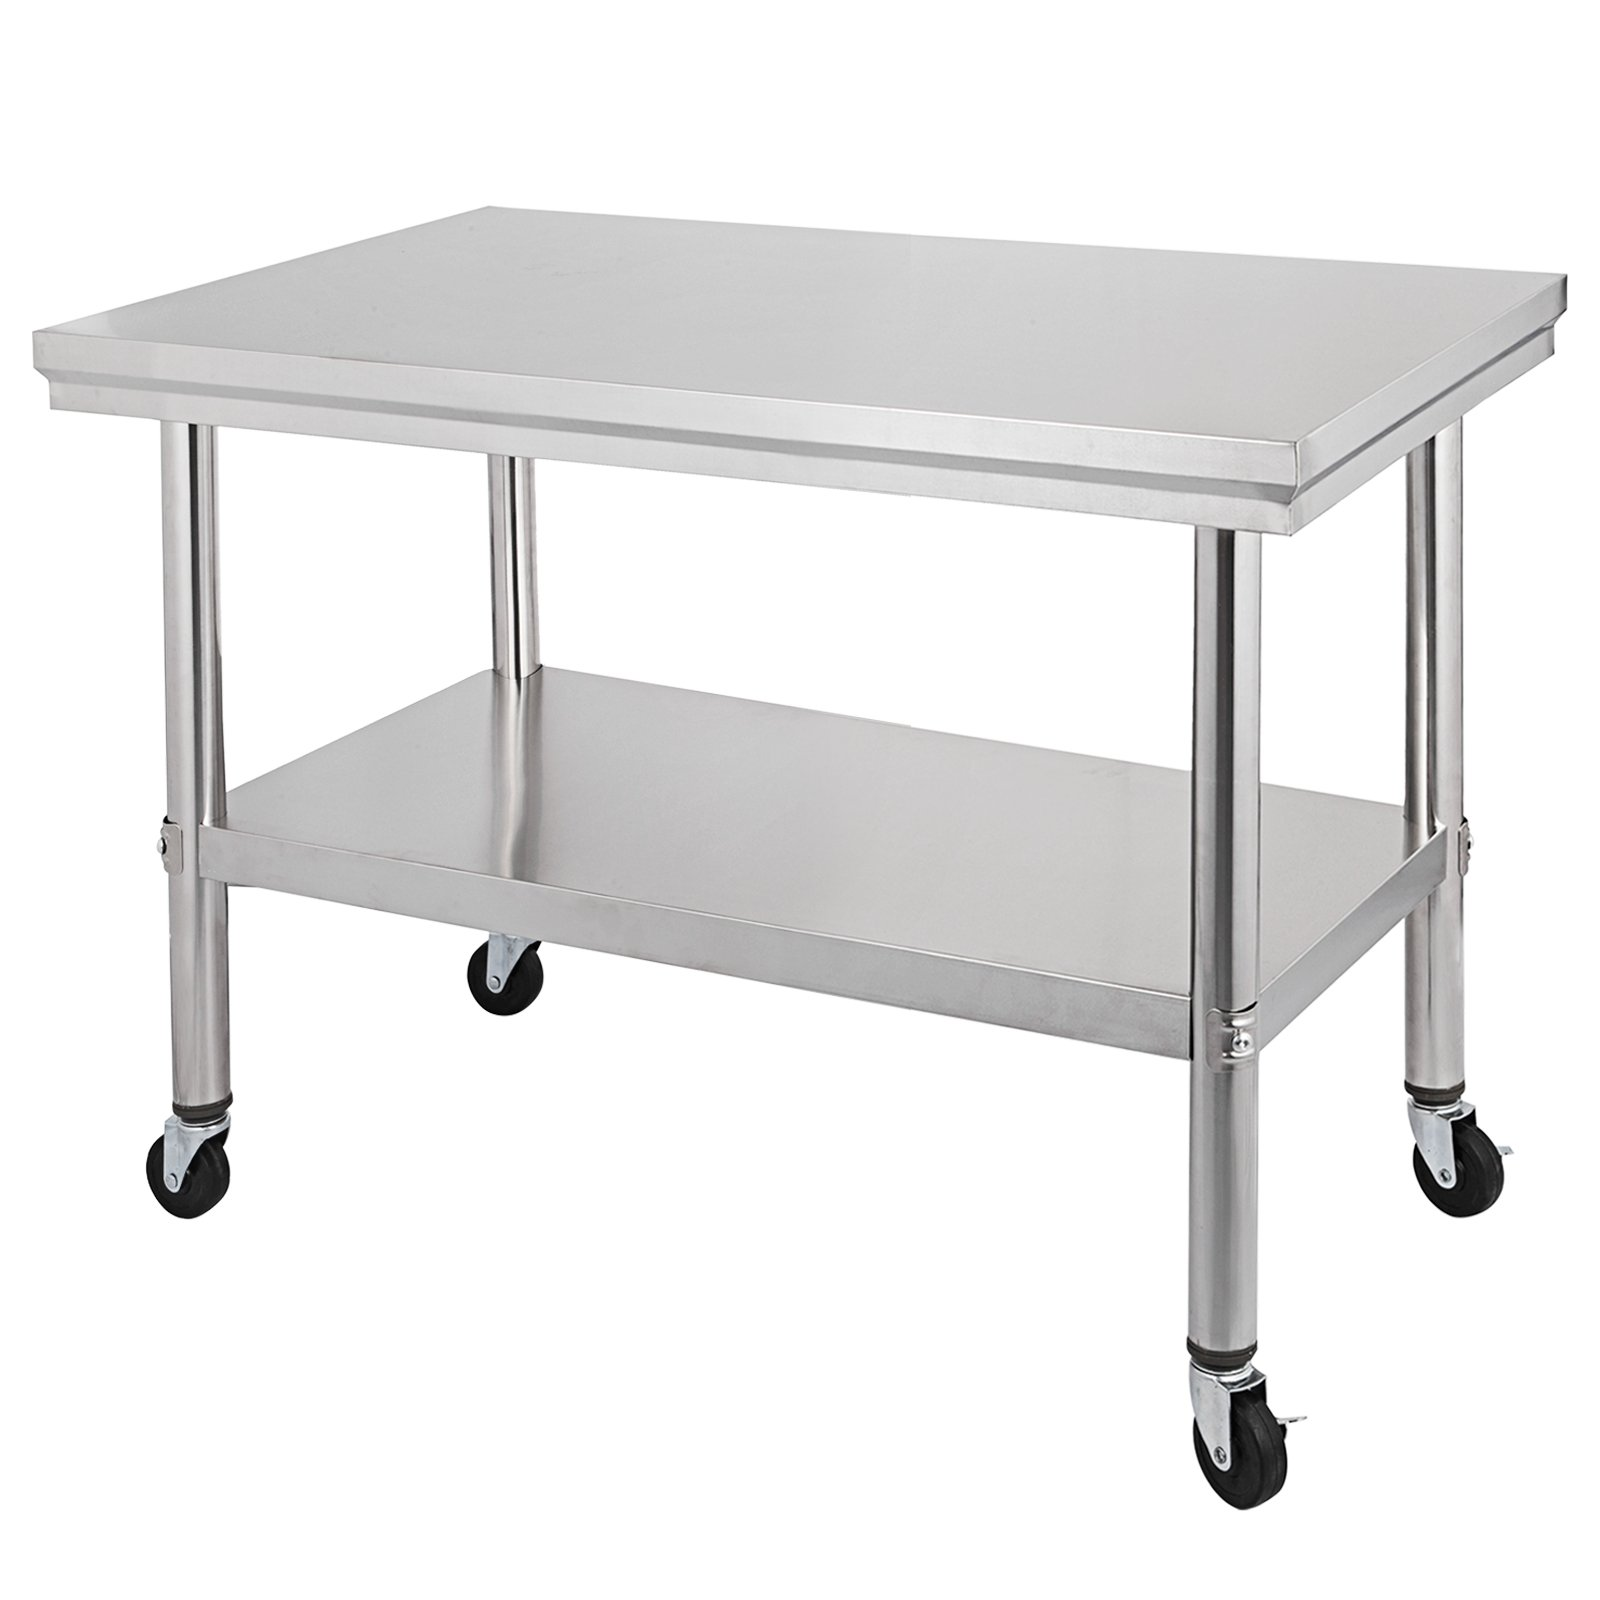 Happybuy NSF stainless Steel work table with wheels 36x24 Prep table with casters Heavy duty work table for commercial kitchen Restaurant Business Garage sliver (36''x24'')